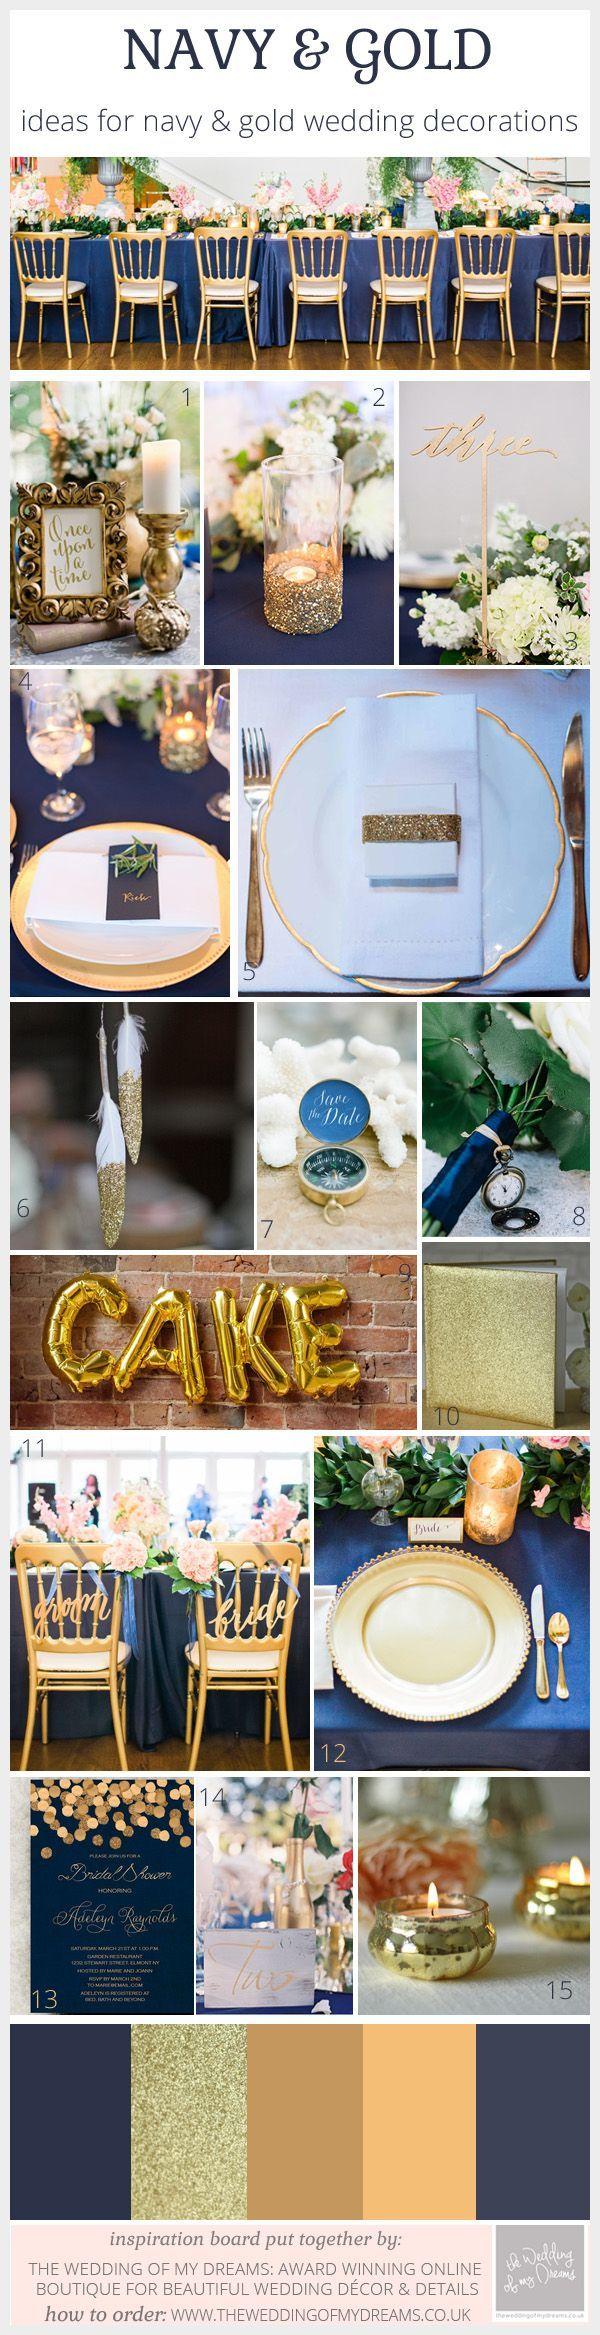 Choosing a navy and gold color scheme for weddings can create a classic and eleg…